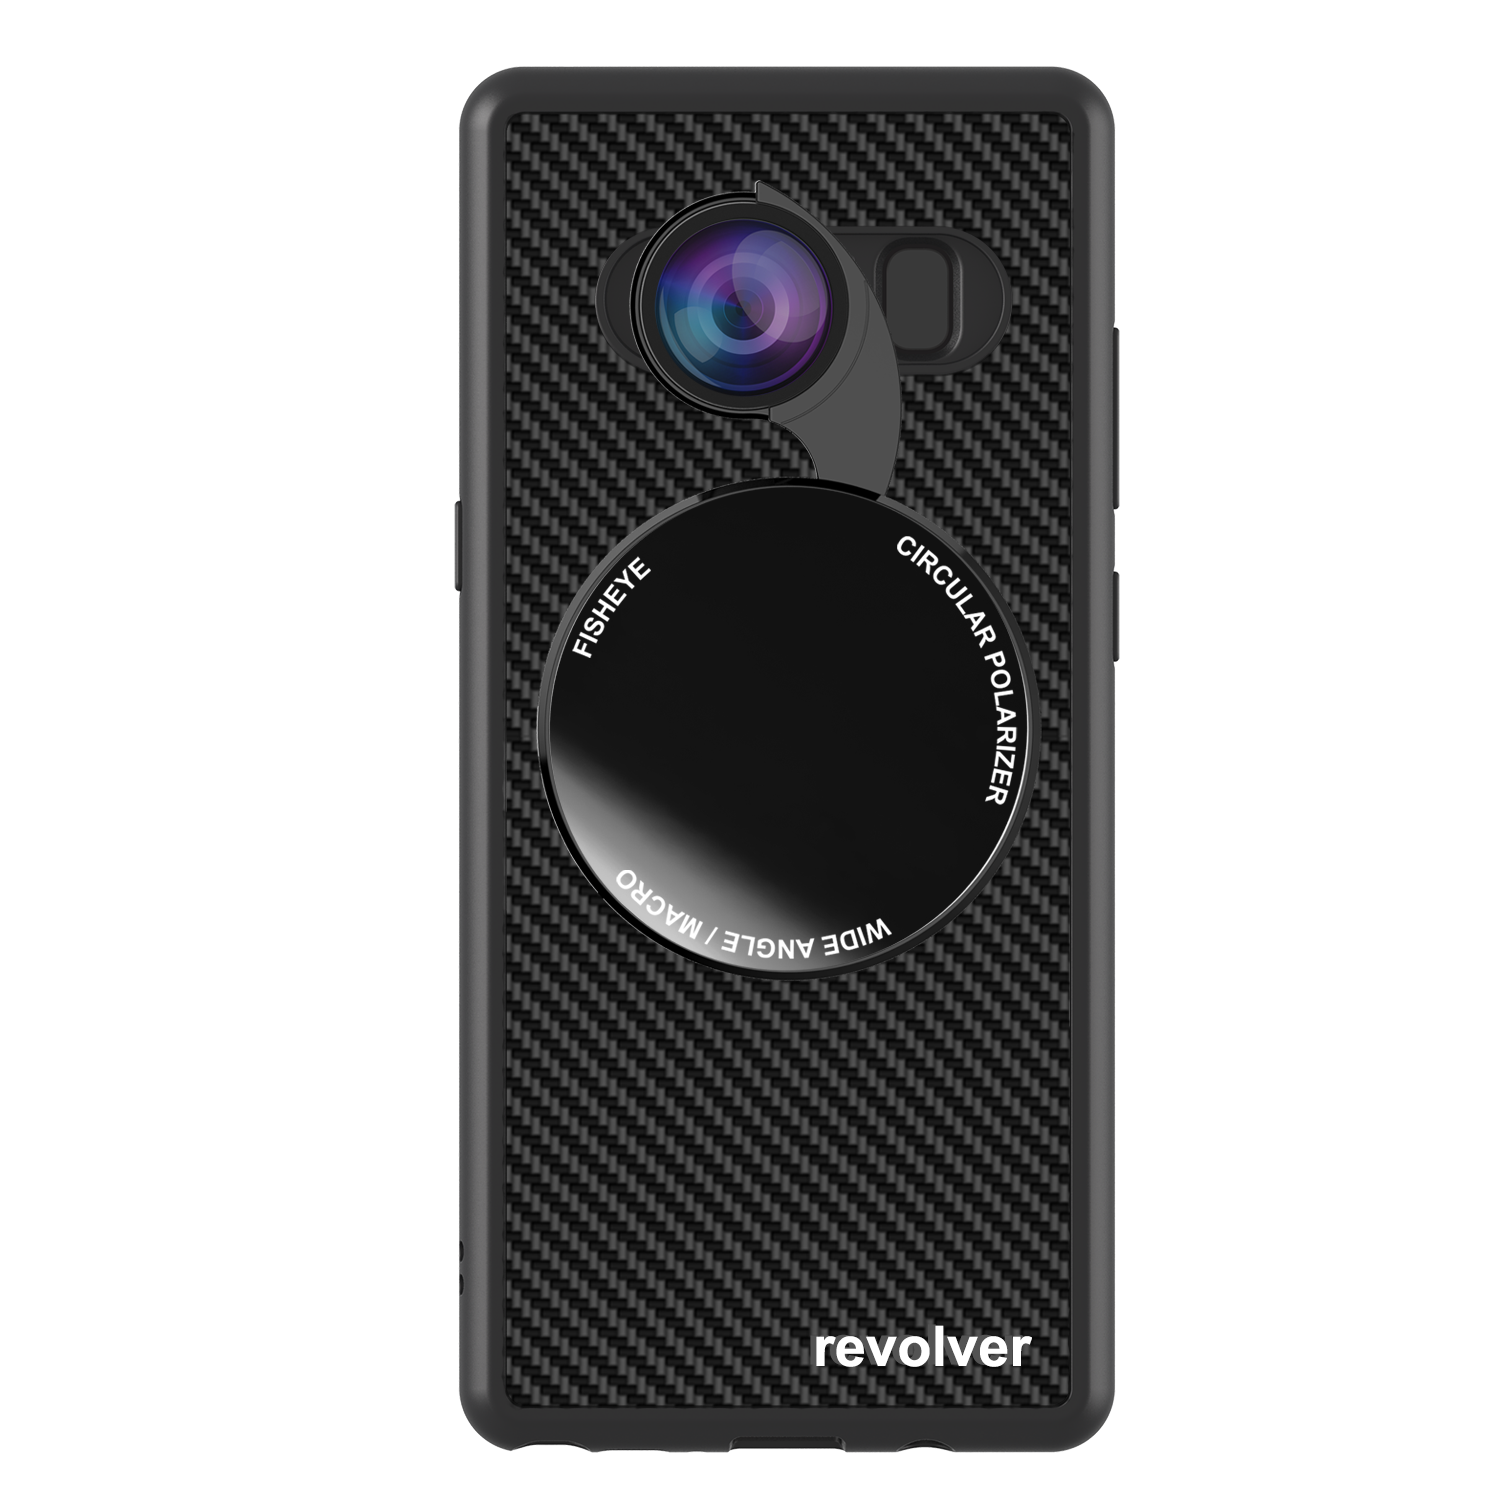 4-in-1 Revolver Lens Kit for Samsung Galaxy Note 8 - Gloss Black